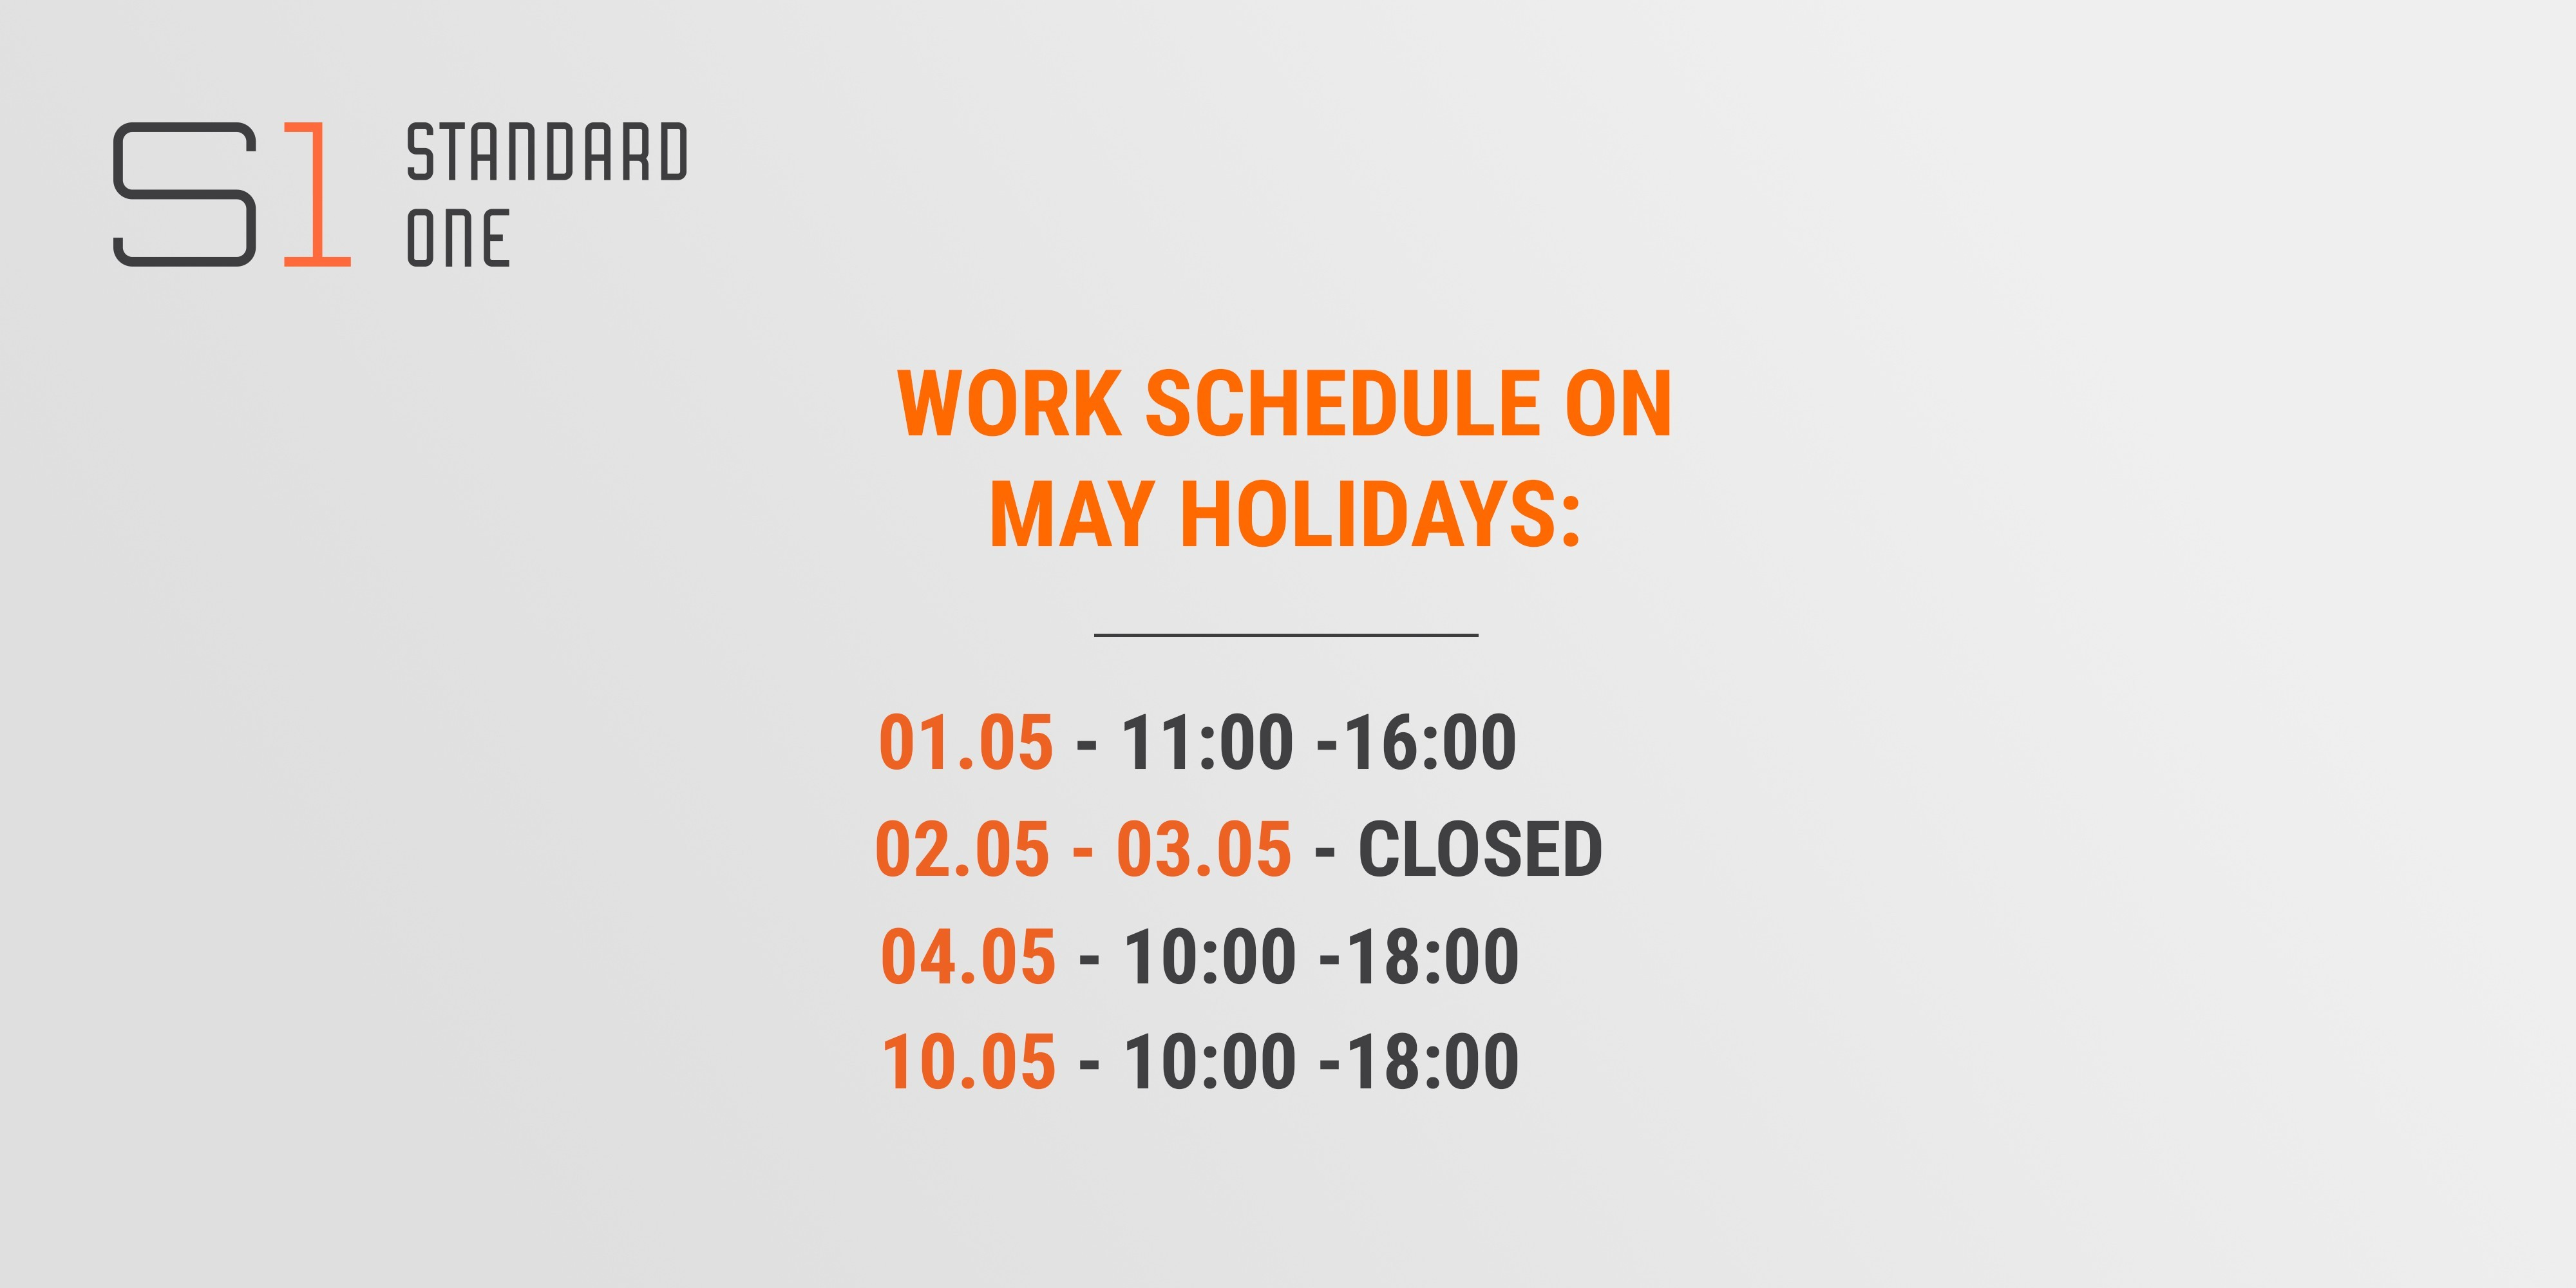 CHANGES IN THE WORK SCHEDULE